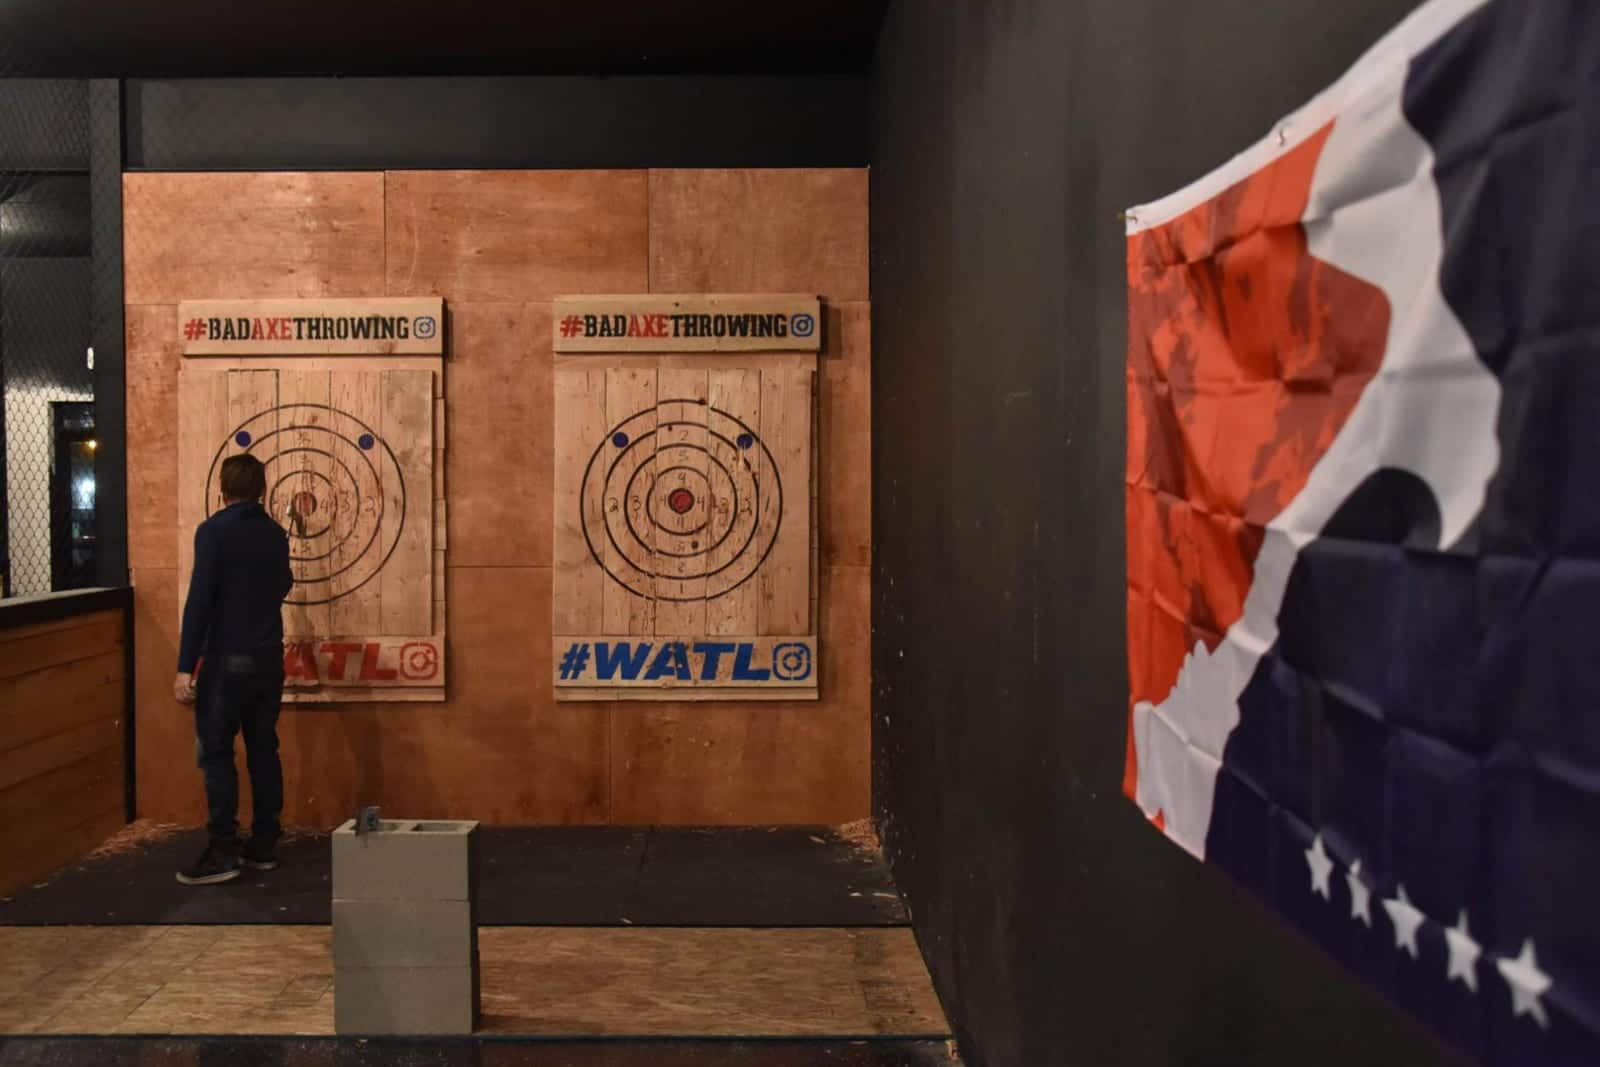 Bad Axe Throwing Denver CO Targets